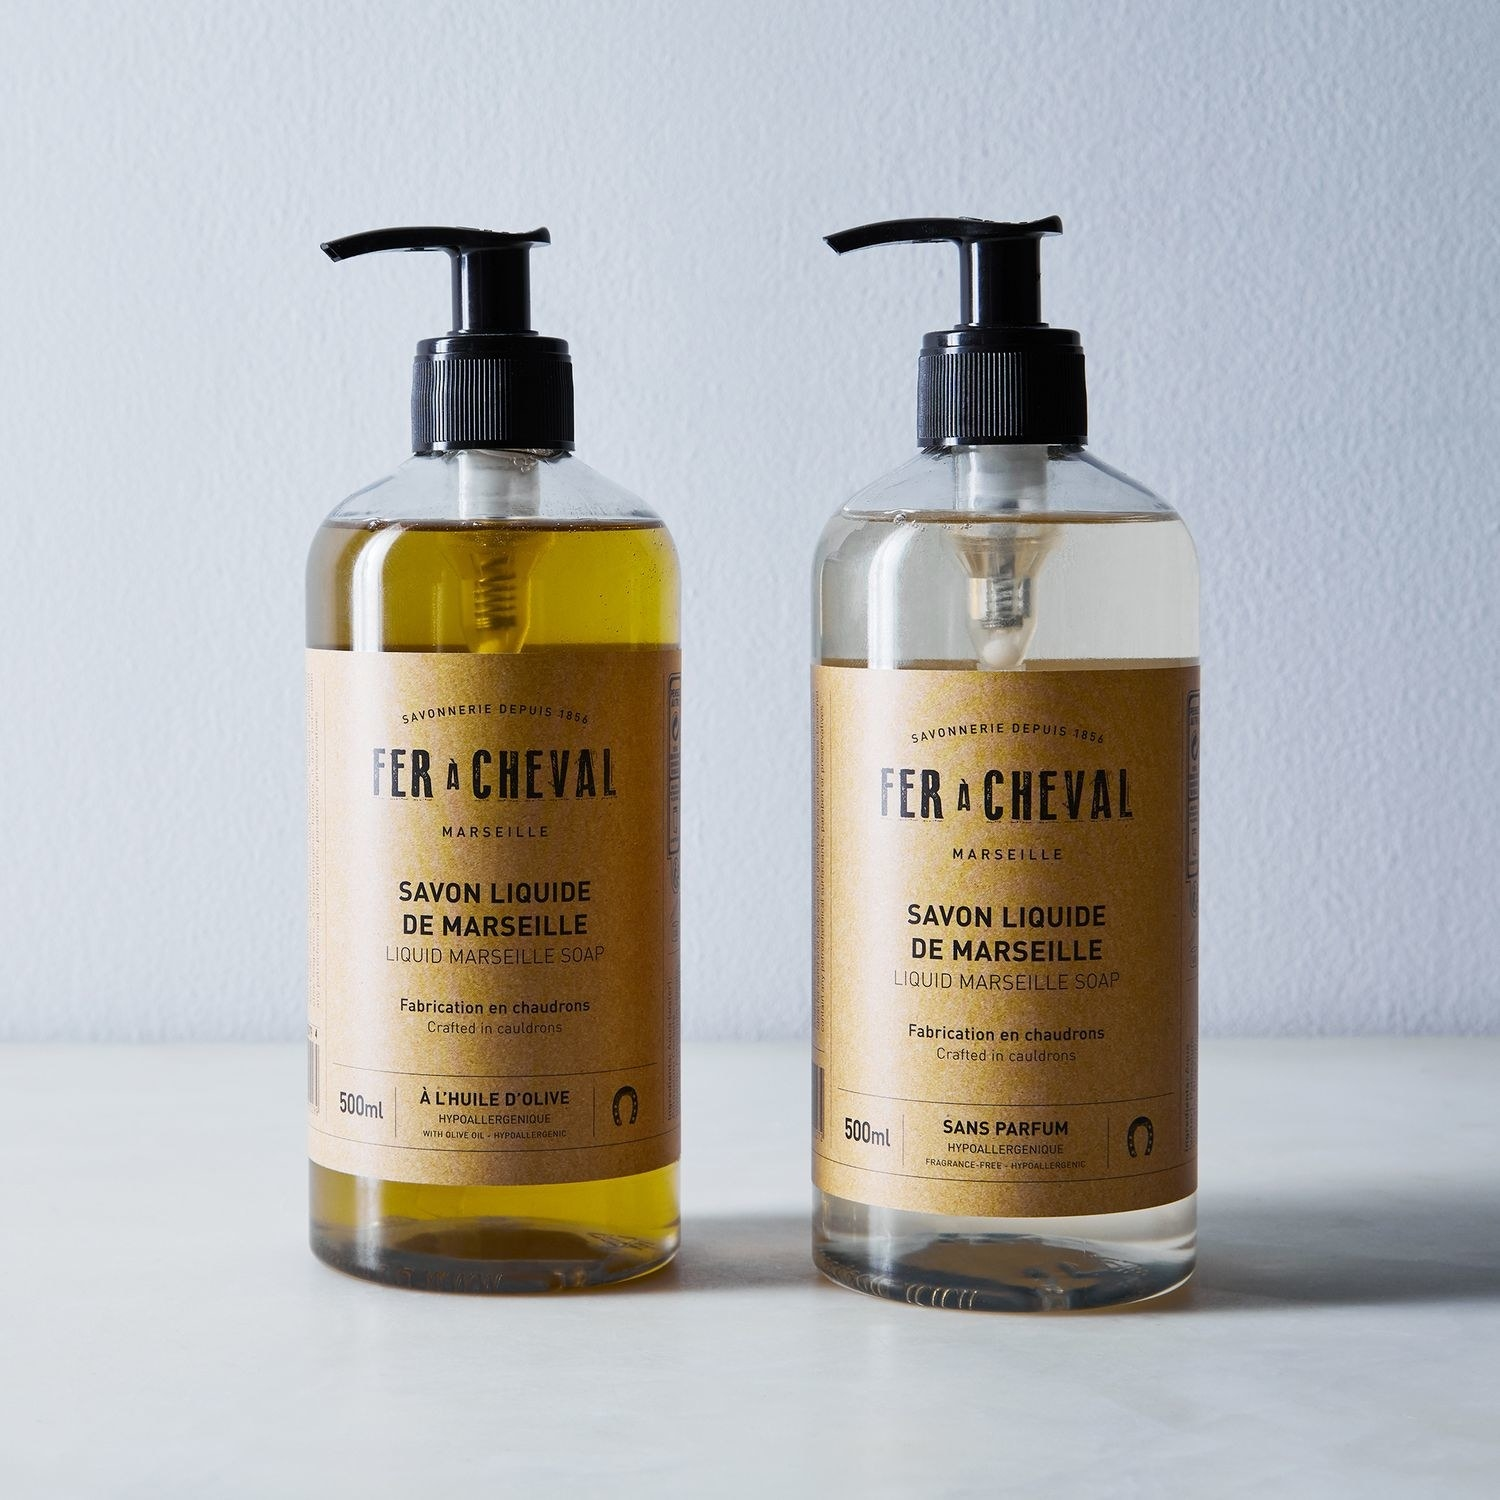 two pump bottles of the hand soap